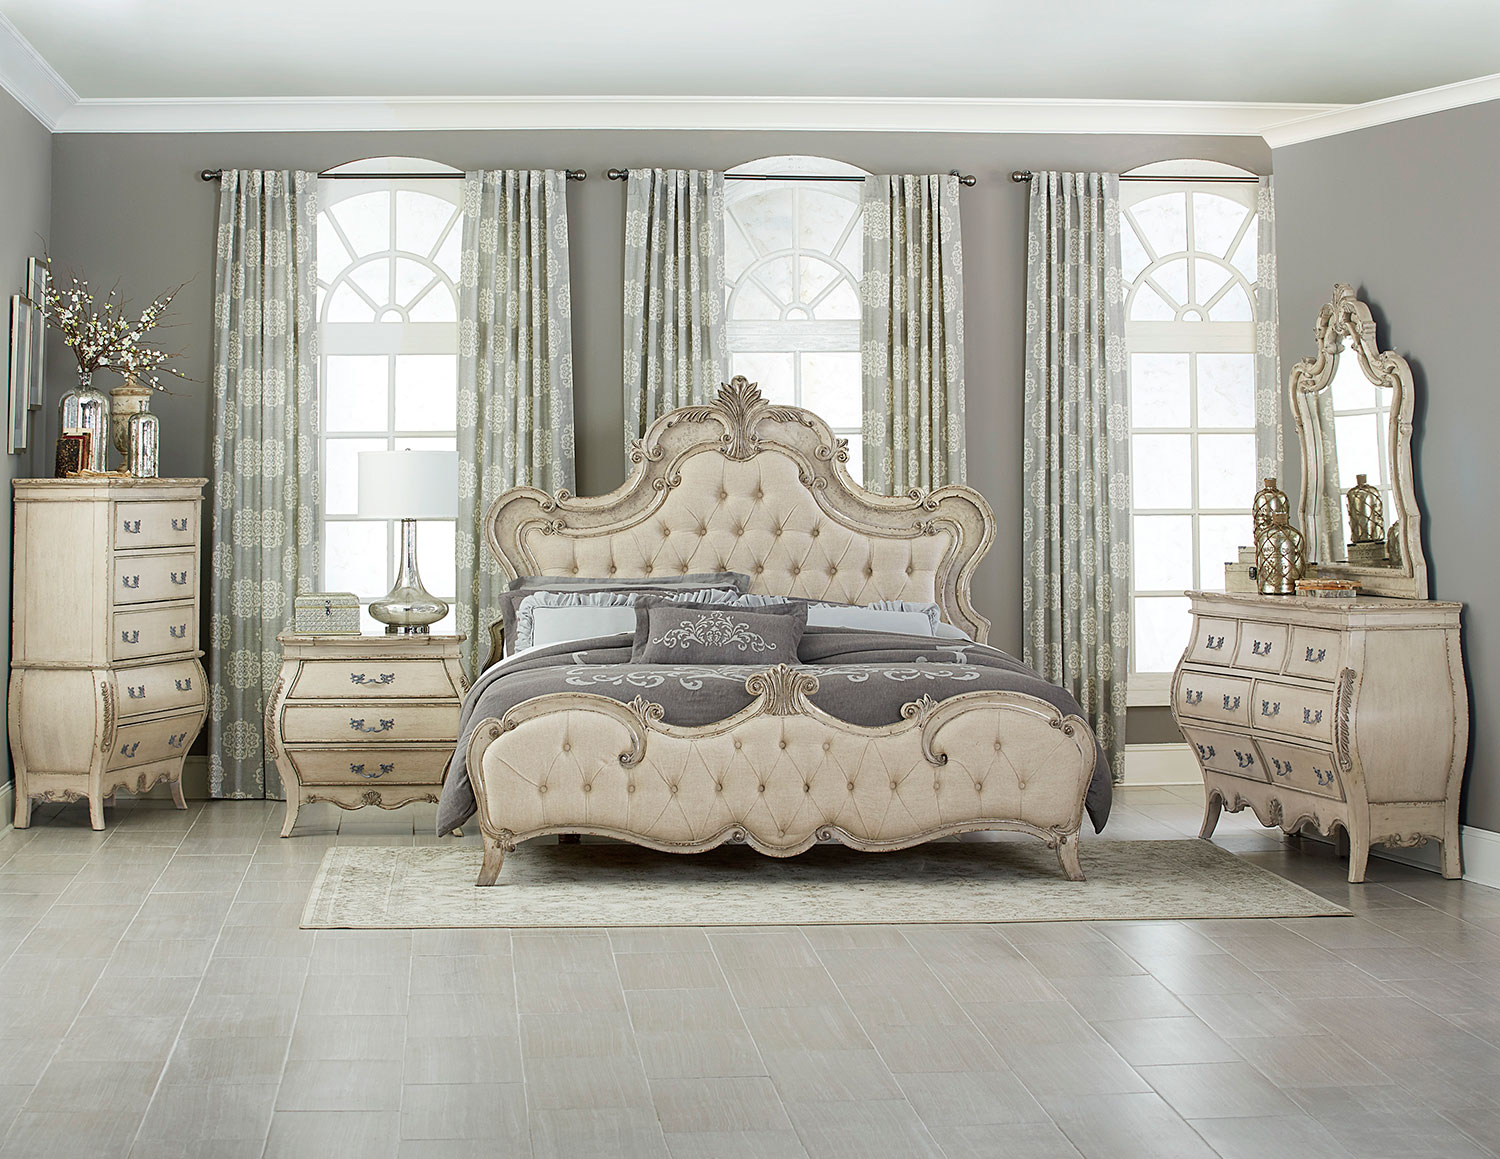 Homelegance Elsmere Button Tufted Upholstered Bedroom Set - Antique Gray